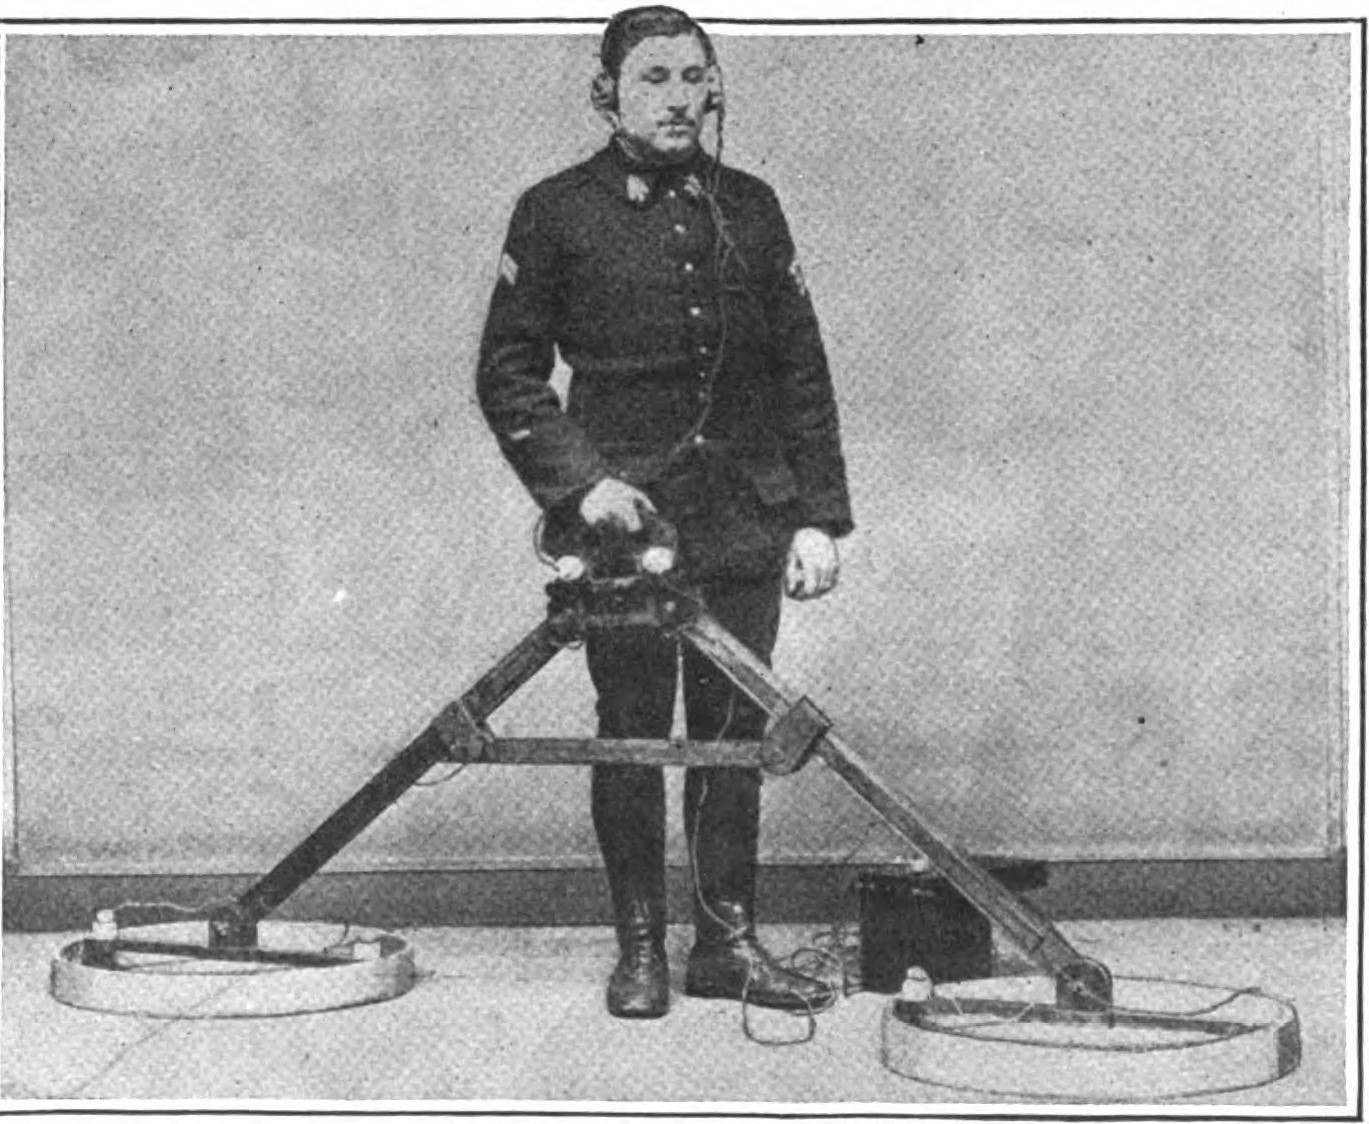 Metal_detector_from_World_War_1 Scientific American